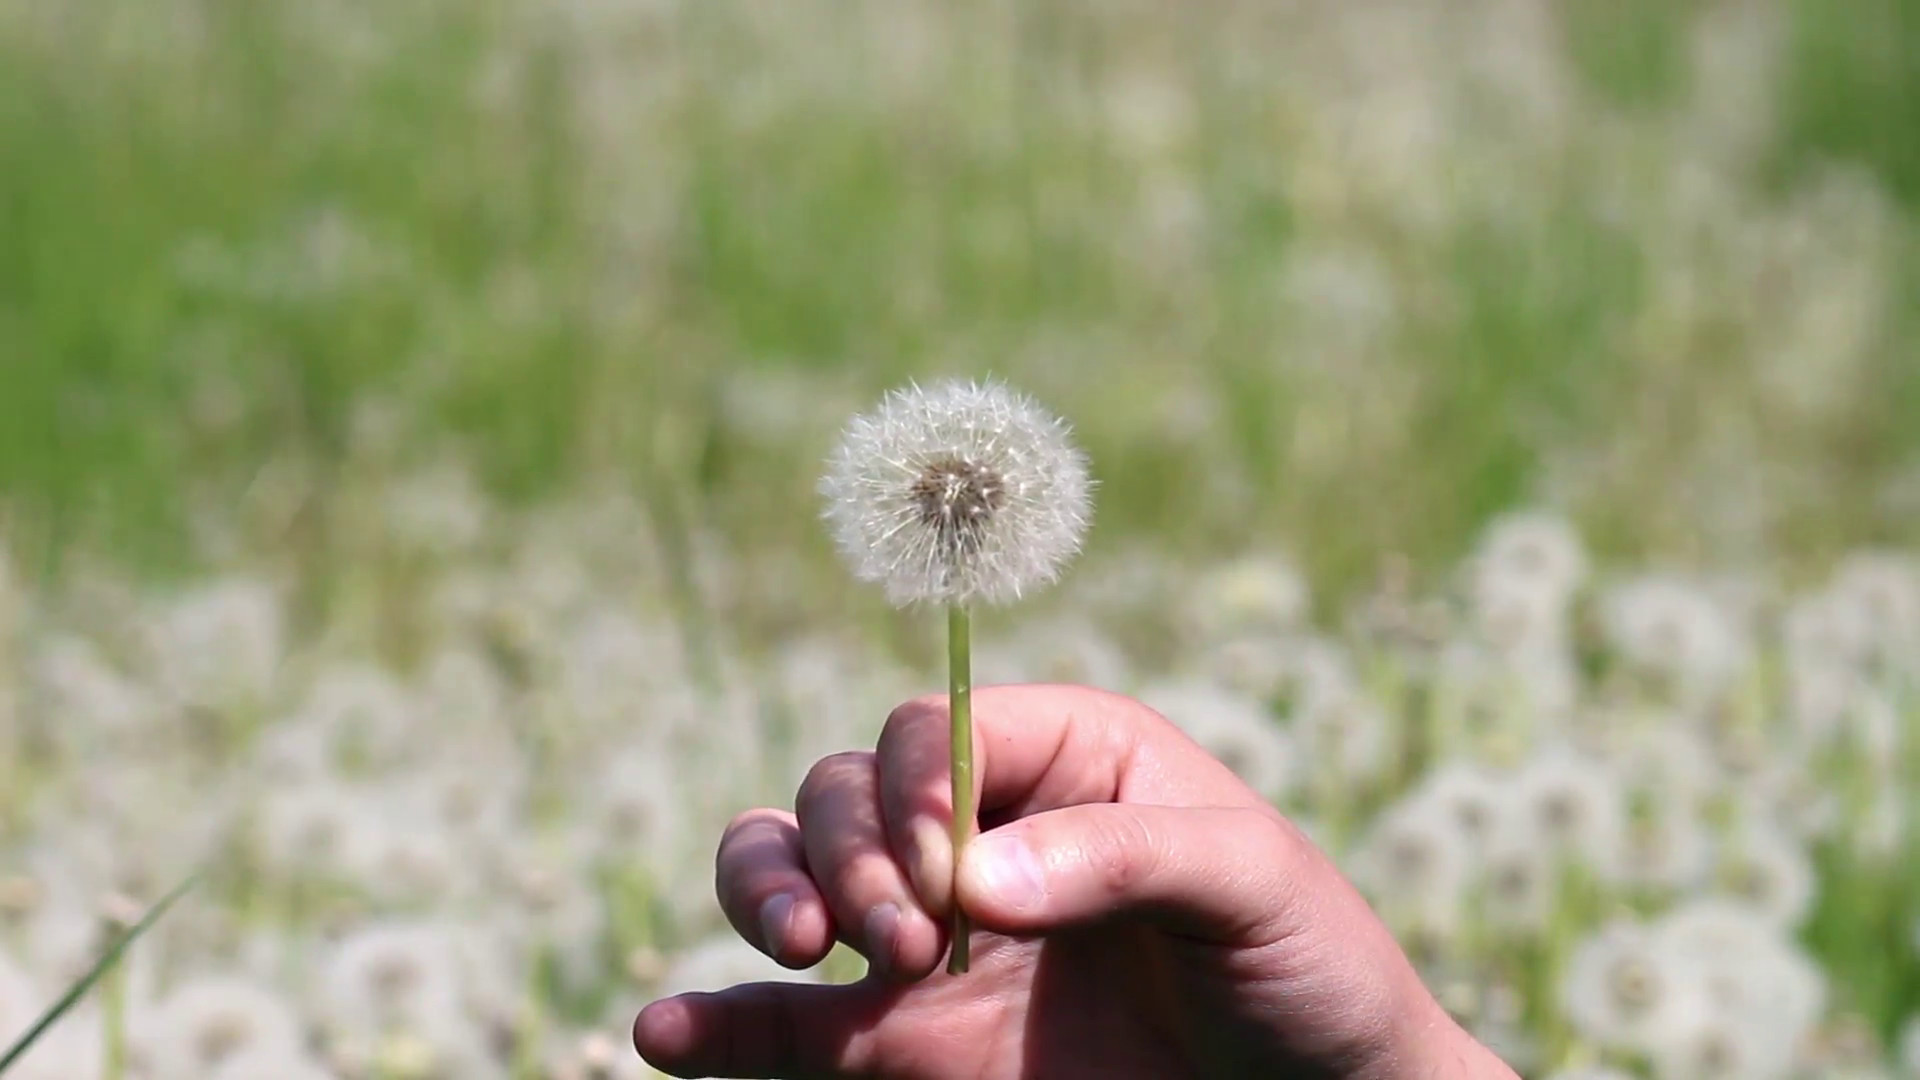 Res: 1920x1080, Man is blowing on dandelion on sunny day Stock Video Footage - Videoblocks